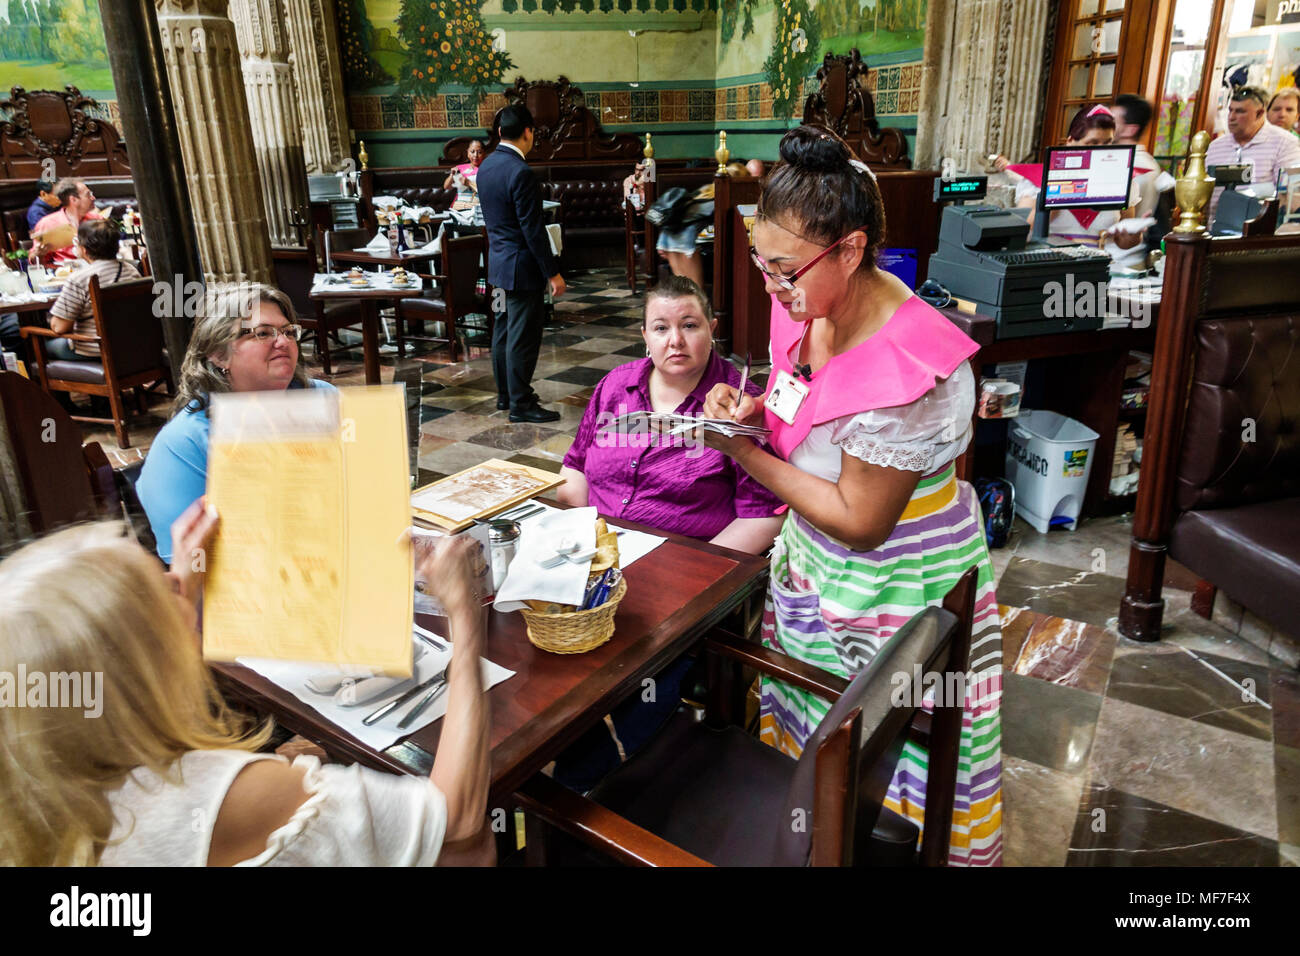 Mexico, Mexico City, Ciudad de, Federal District, Distrito, DF, D.F., CDMX, Mexican, Hispanic Hispanics Latin Latino Latinos ethnic ethnics minority m Stock Photo